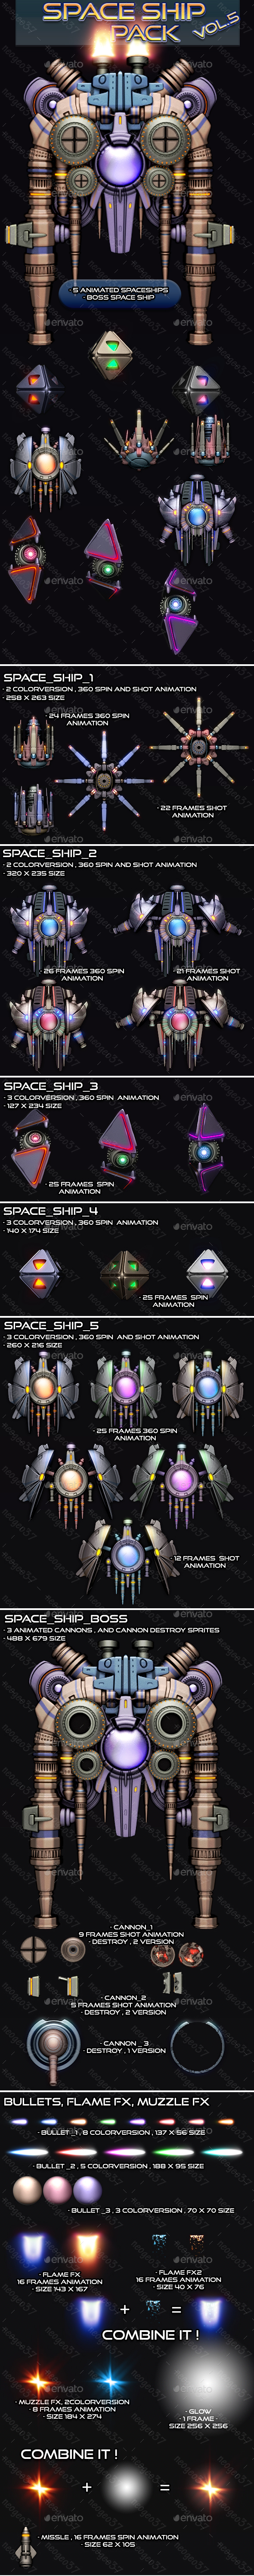 Space Ship Pack Vol 5 - Sprites Game Assets